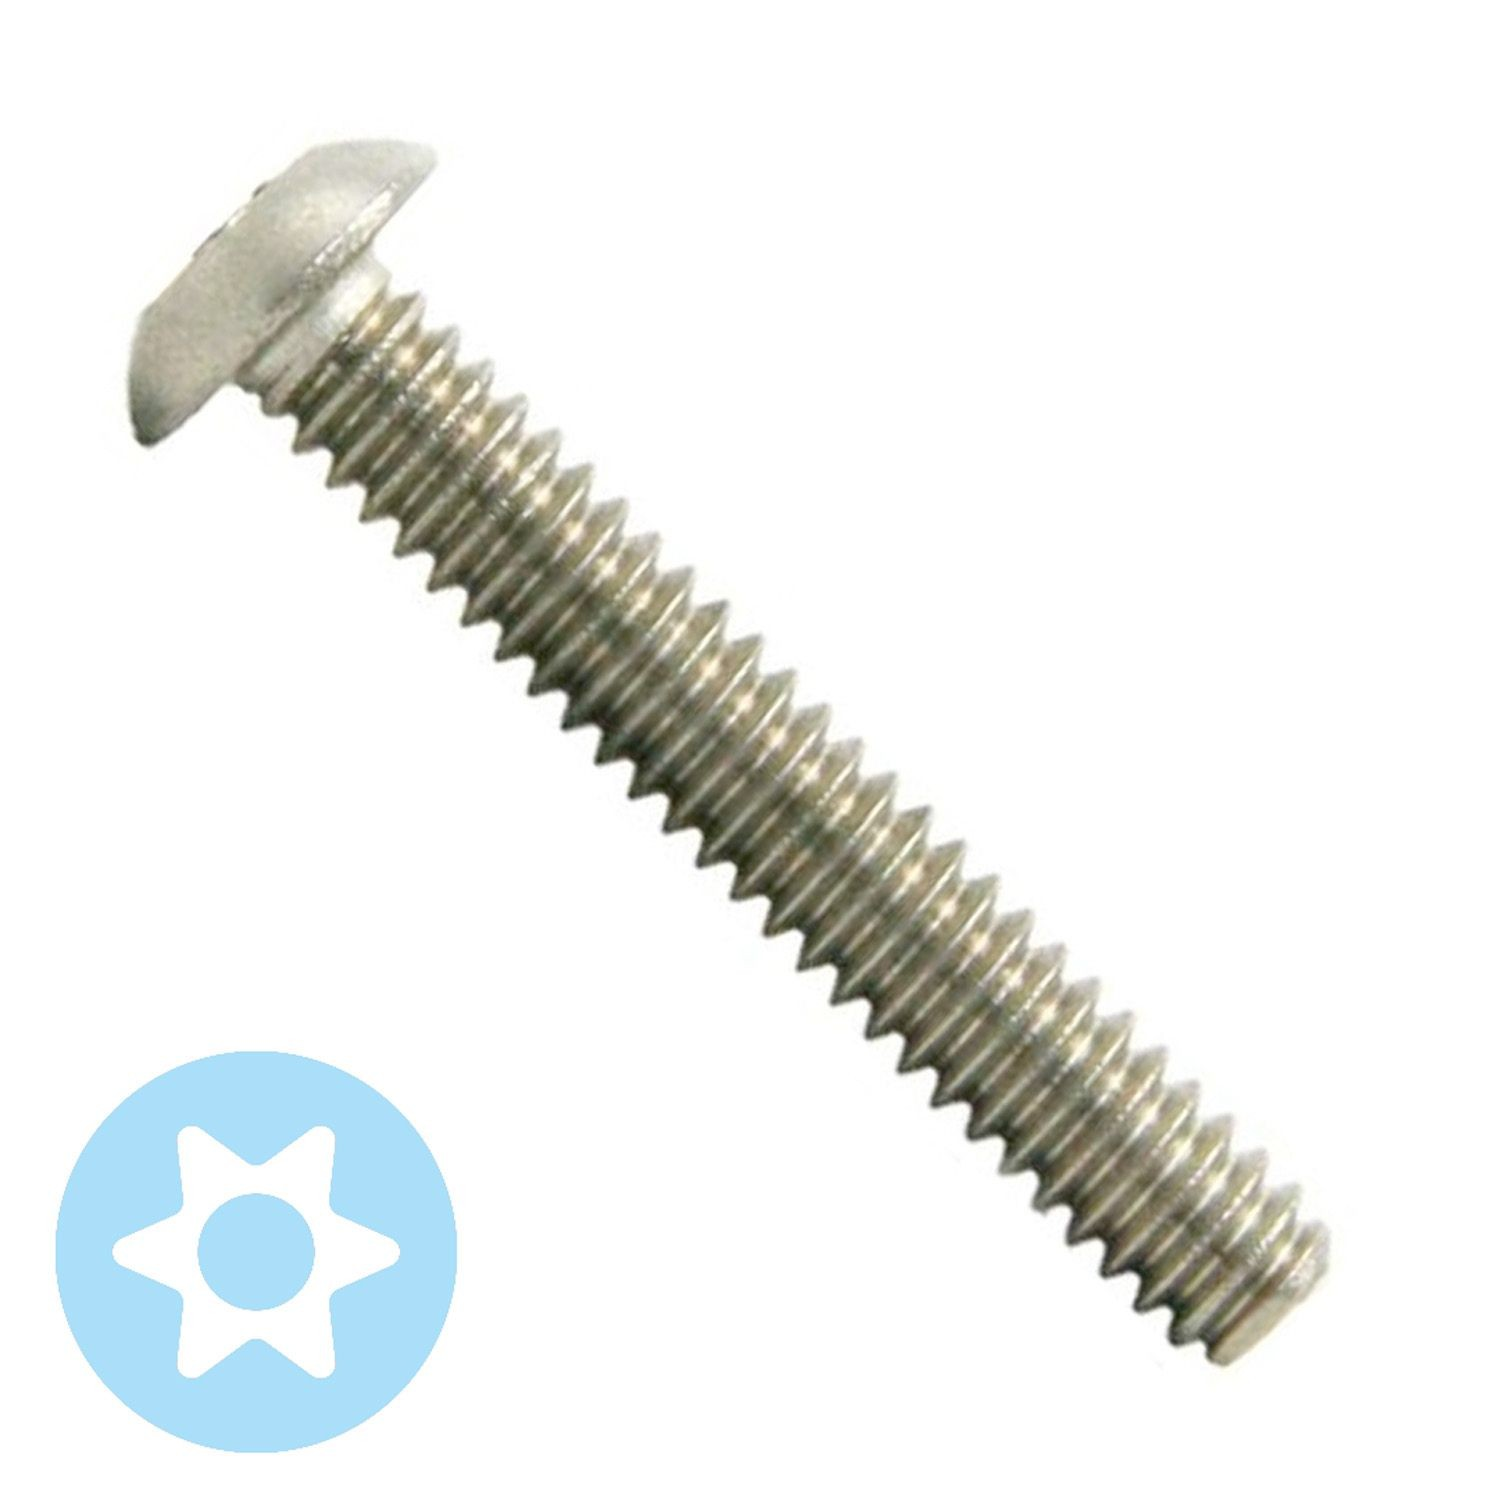 "#10-32 x 1-1/4"" Stainless Steel Torx Button Head Machine Screw"